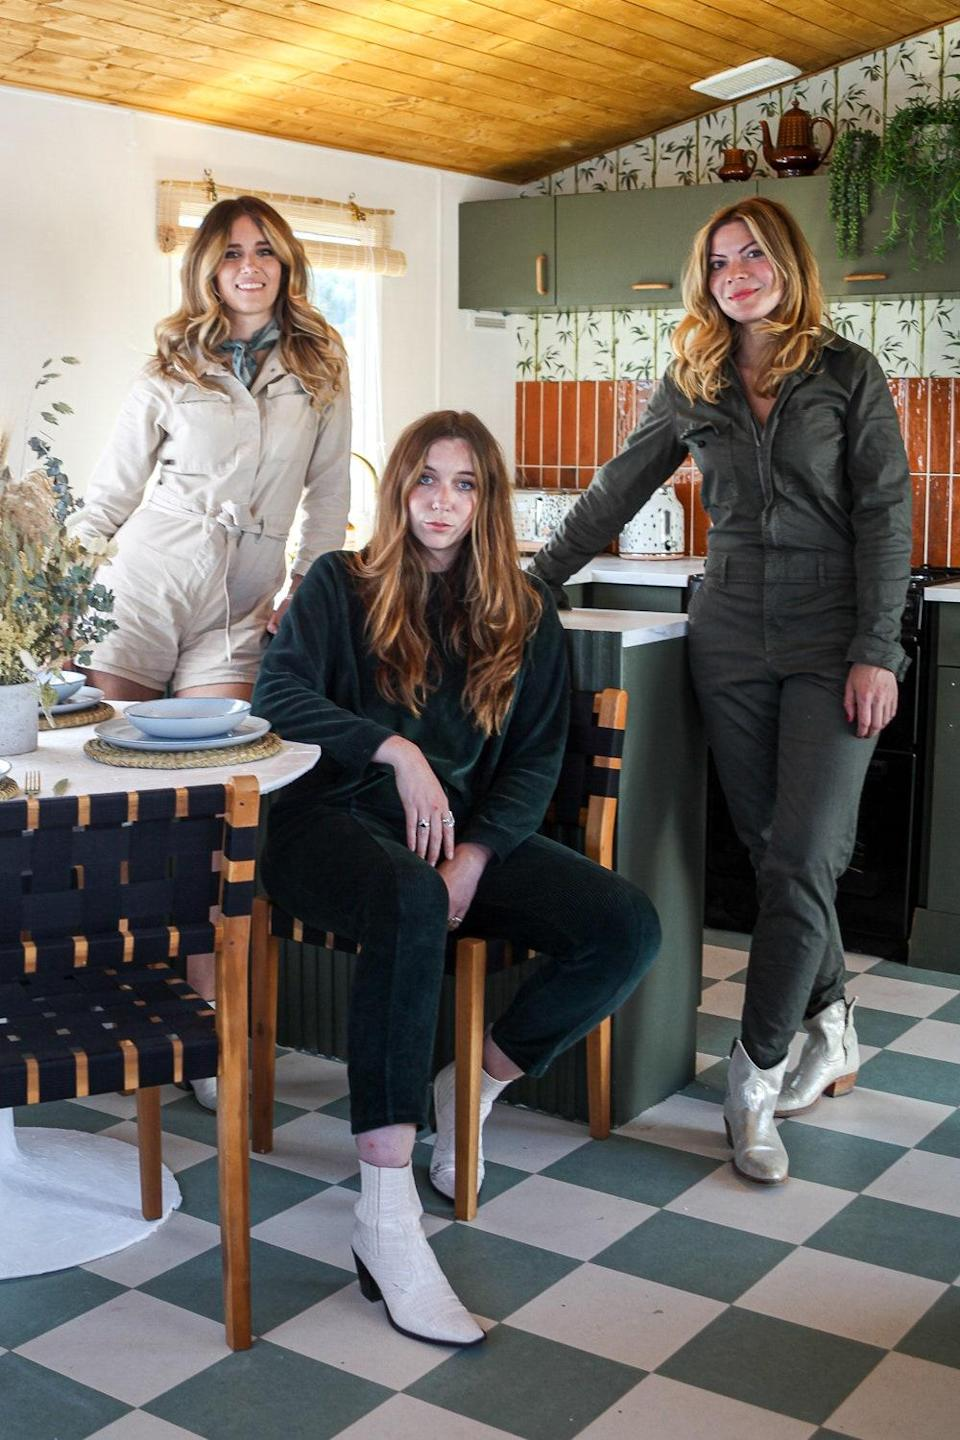 """""""We're three friends who really believed in each other's talents,"""" says Anna (right), looking back on the renovation. """"I don't have a design background, while the others do. I was so chuffed they let me have such a say in it."""" Whinnie is pictured on the left and Emma in the center."""